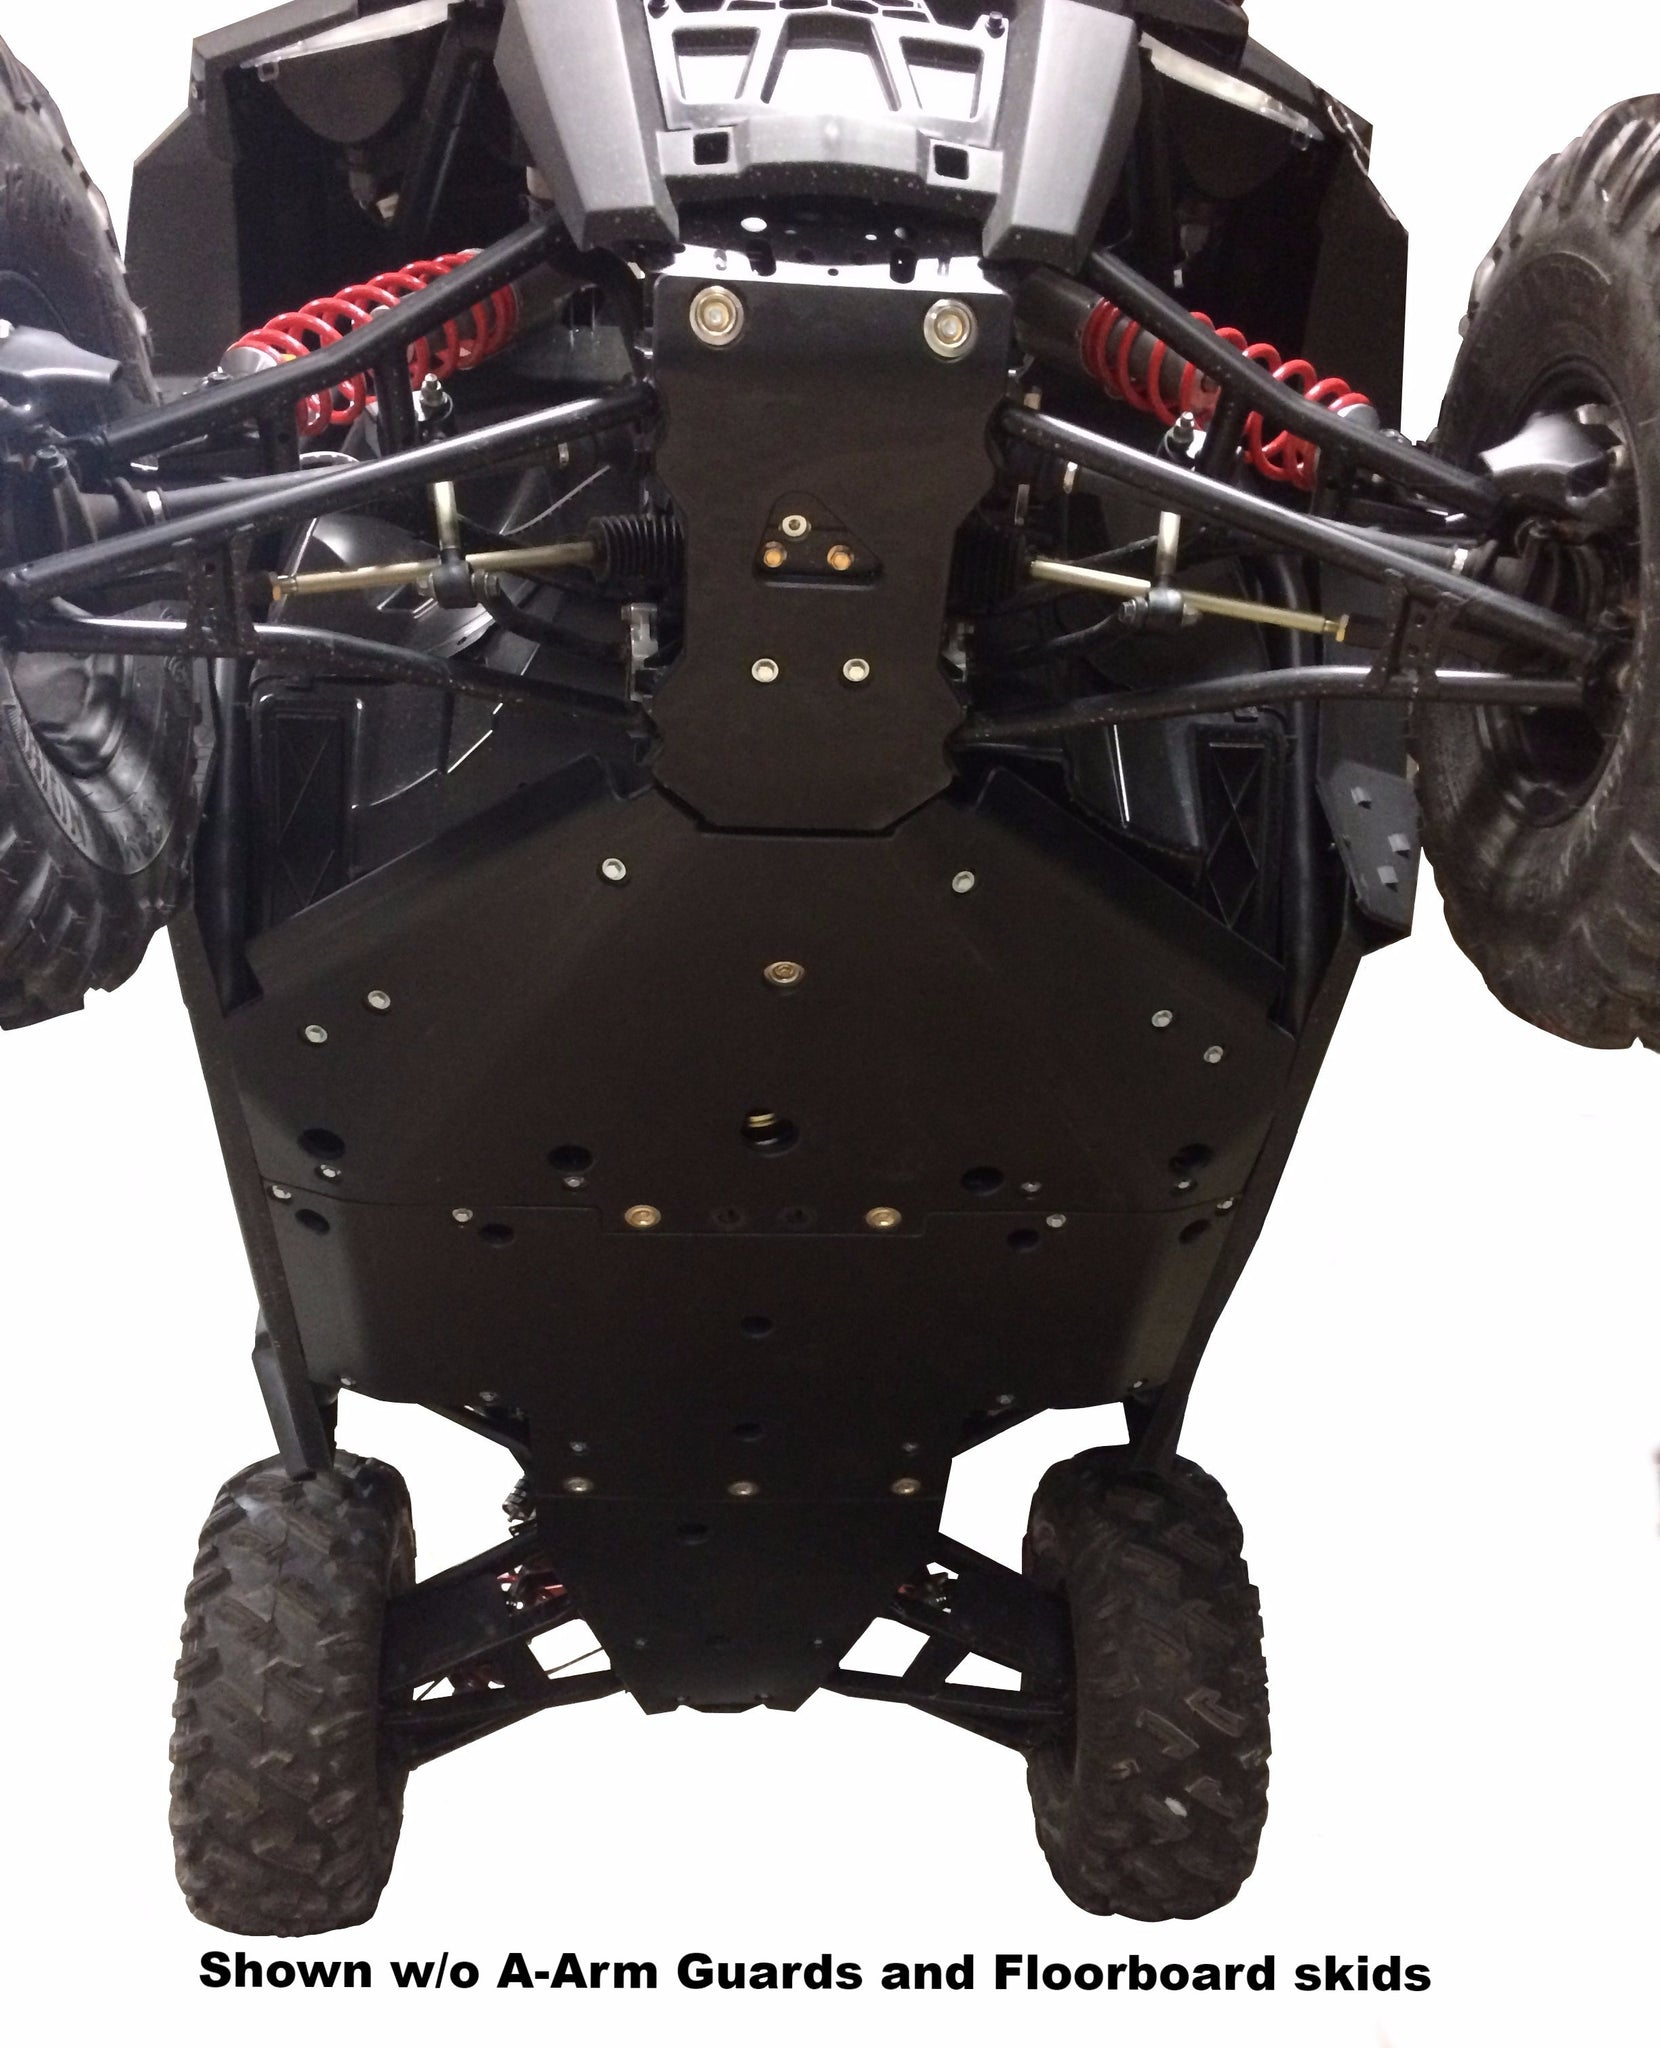 10-Piece Complete Aluminum or UHMW Skid Plate Set, Polaris RZR 900 Trail